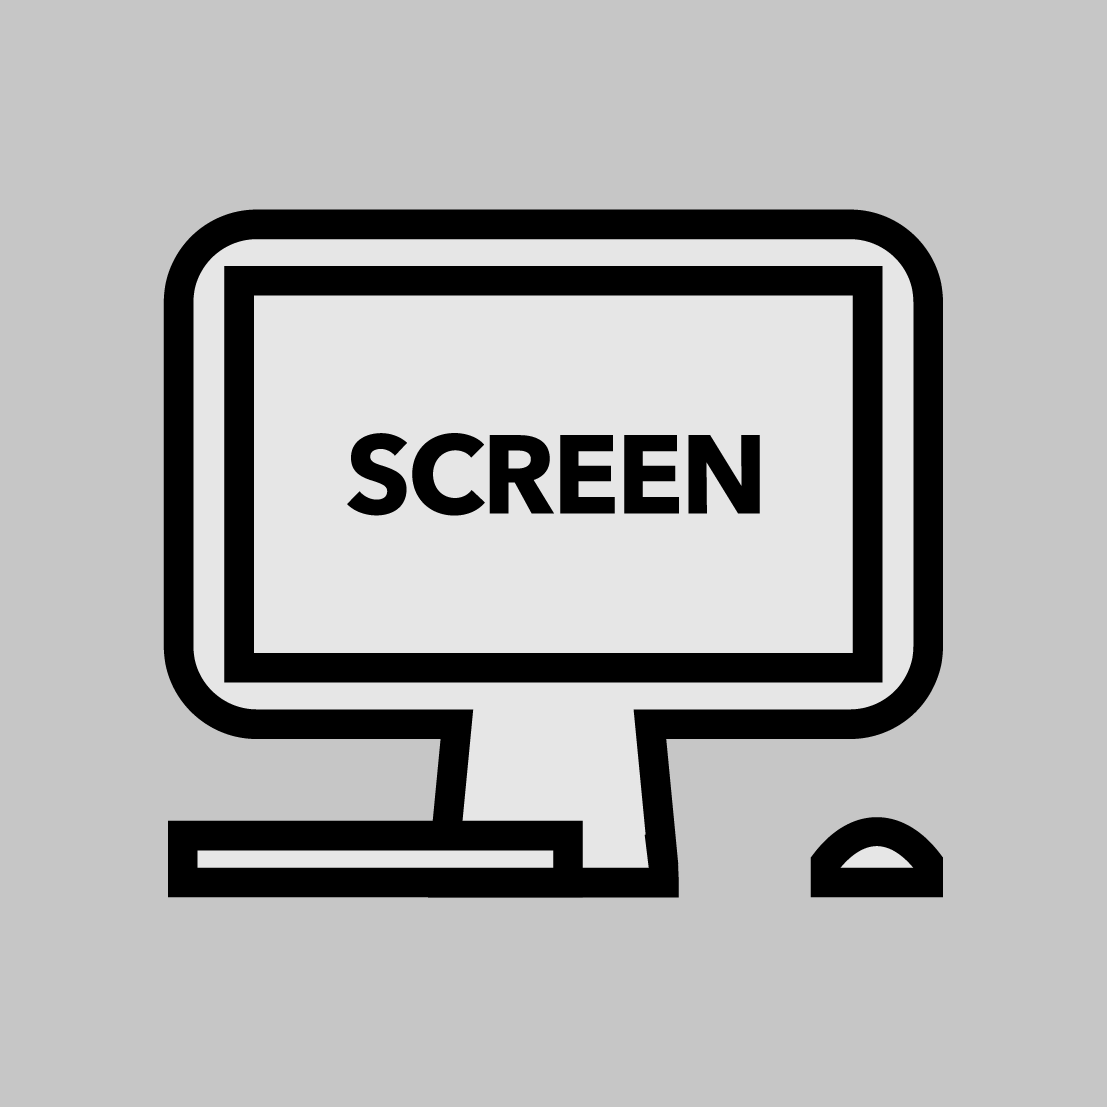 screen-icon-02.png